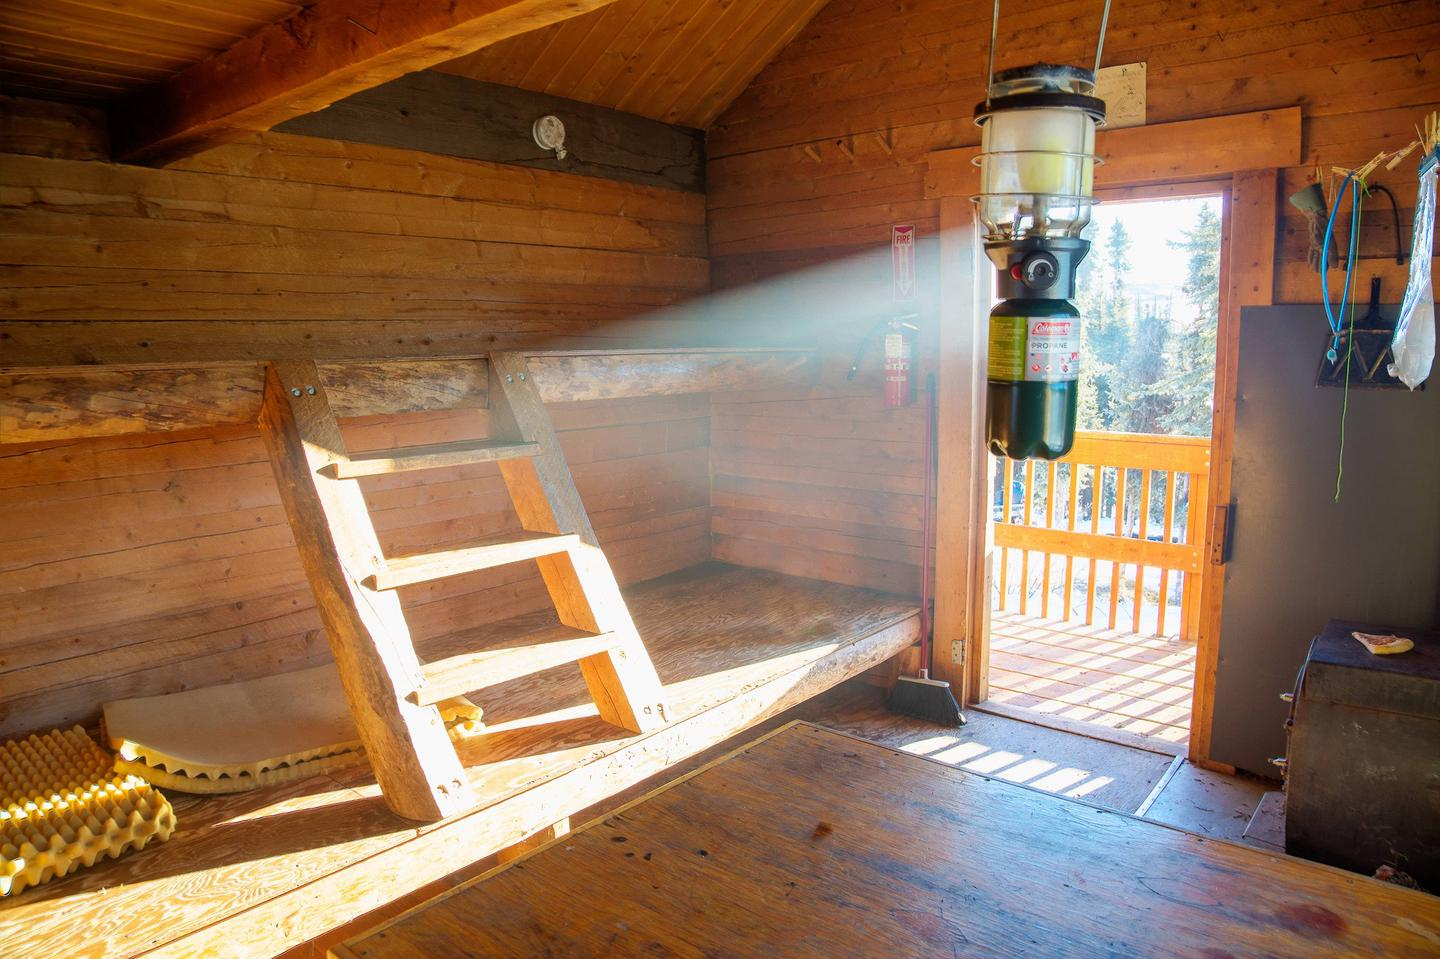 Sunlight streams through an open door into a log cabin.Borealis-LeFevre Cabin interior view of bunks and door.